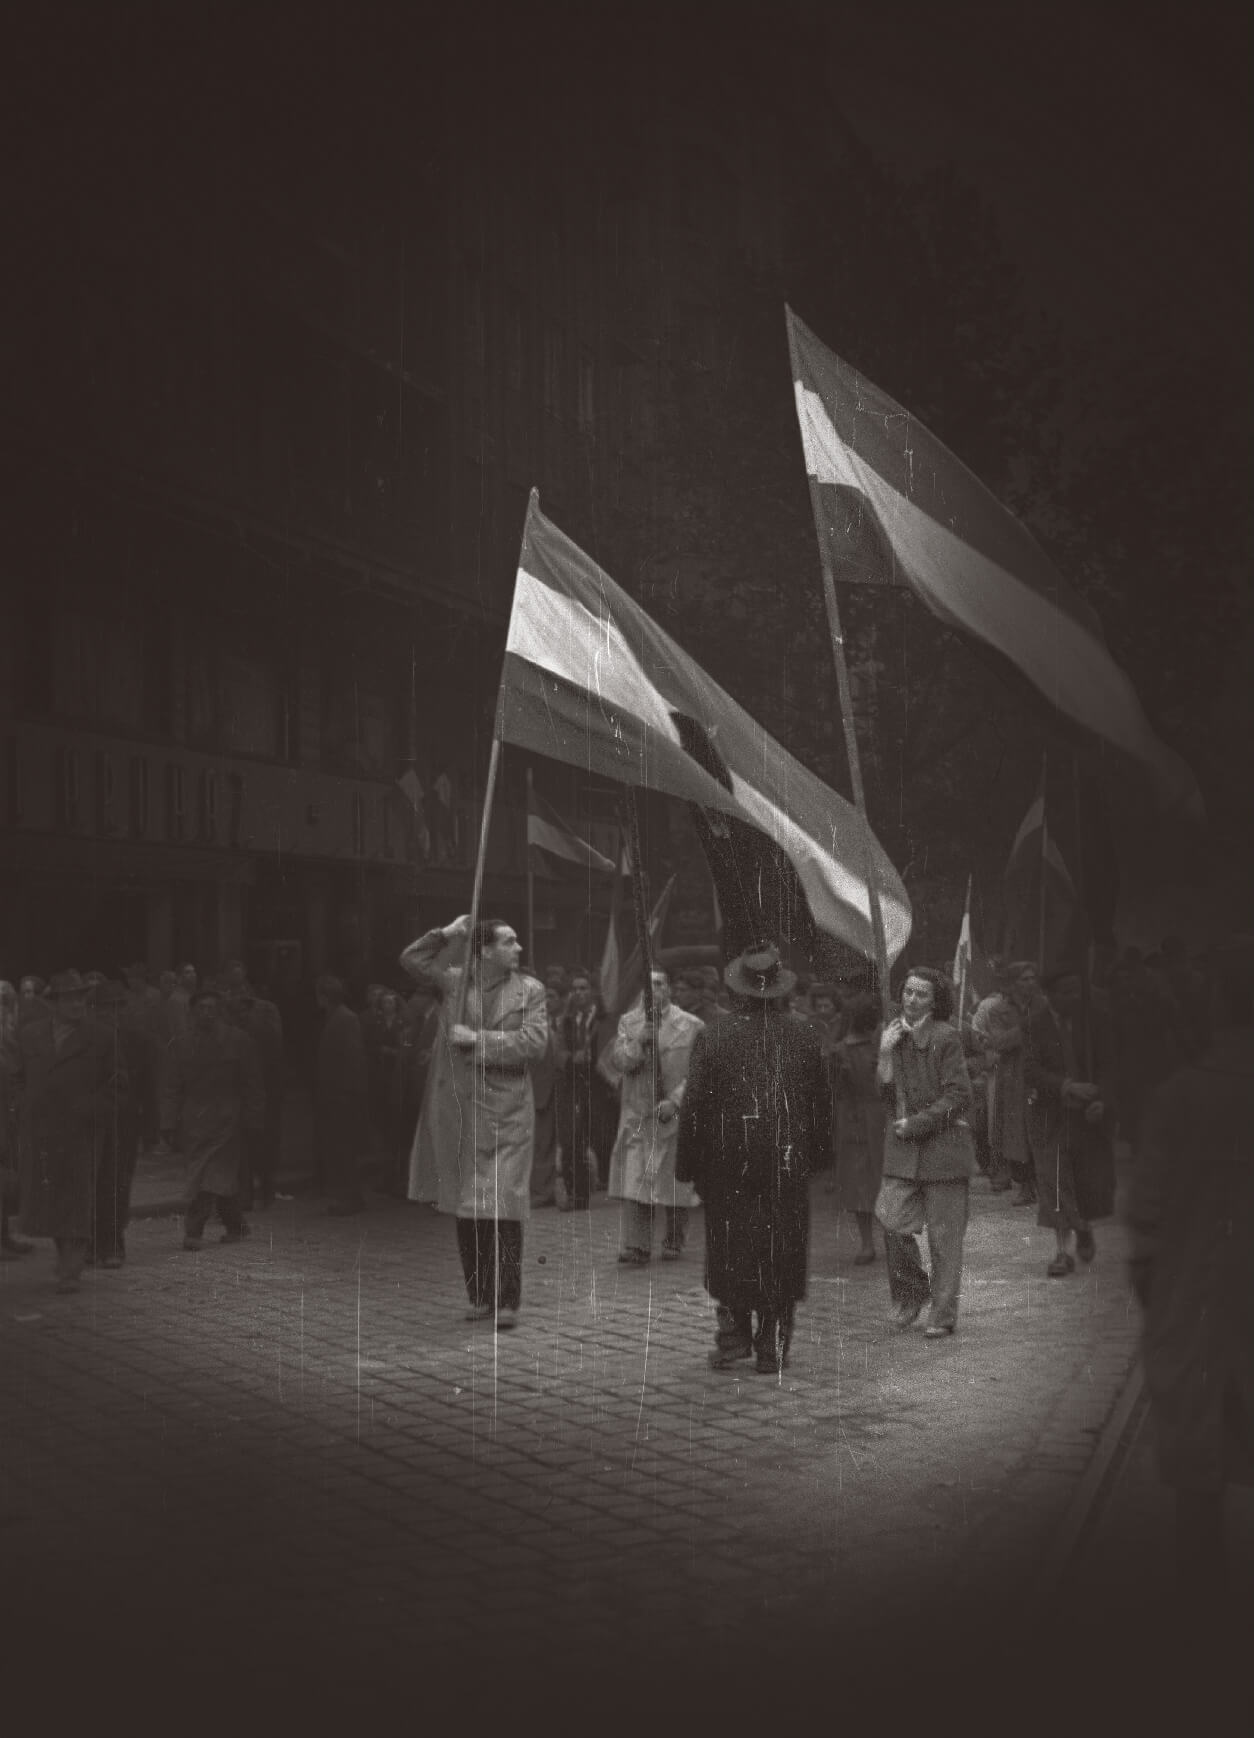 Carrying flags during the 1956 Hungarian Revolution